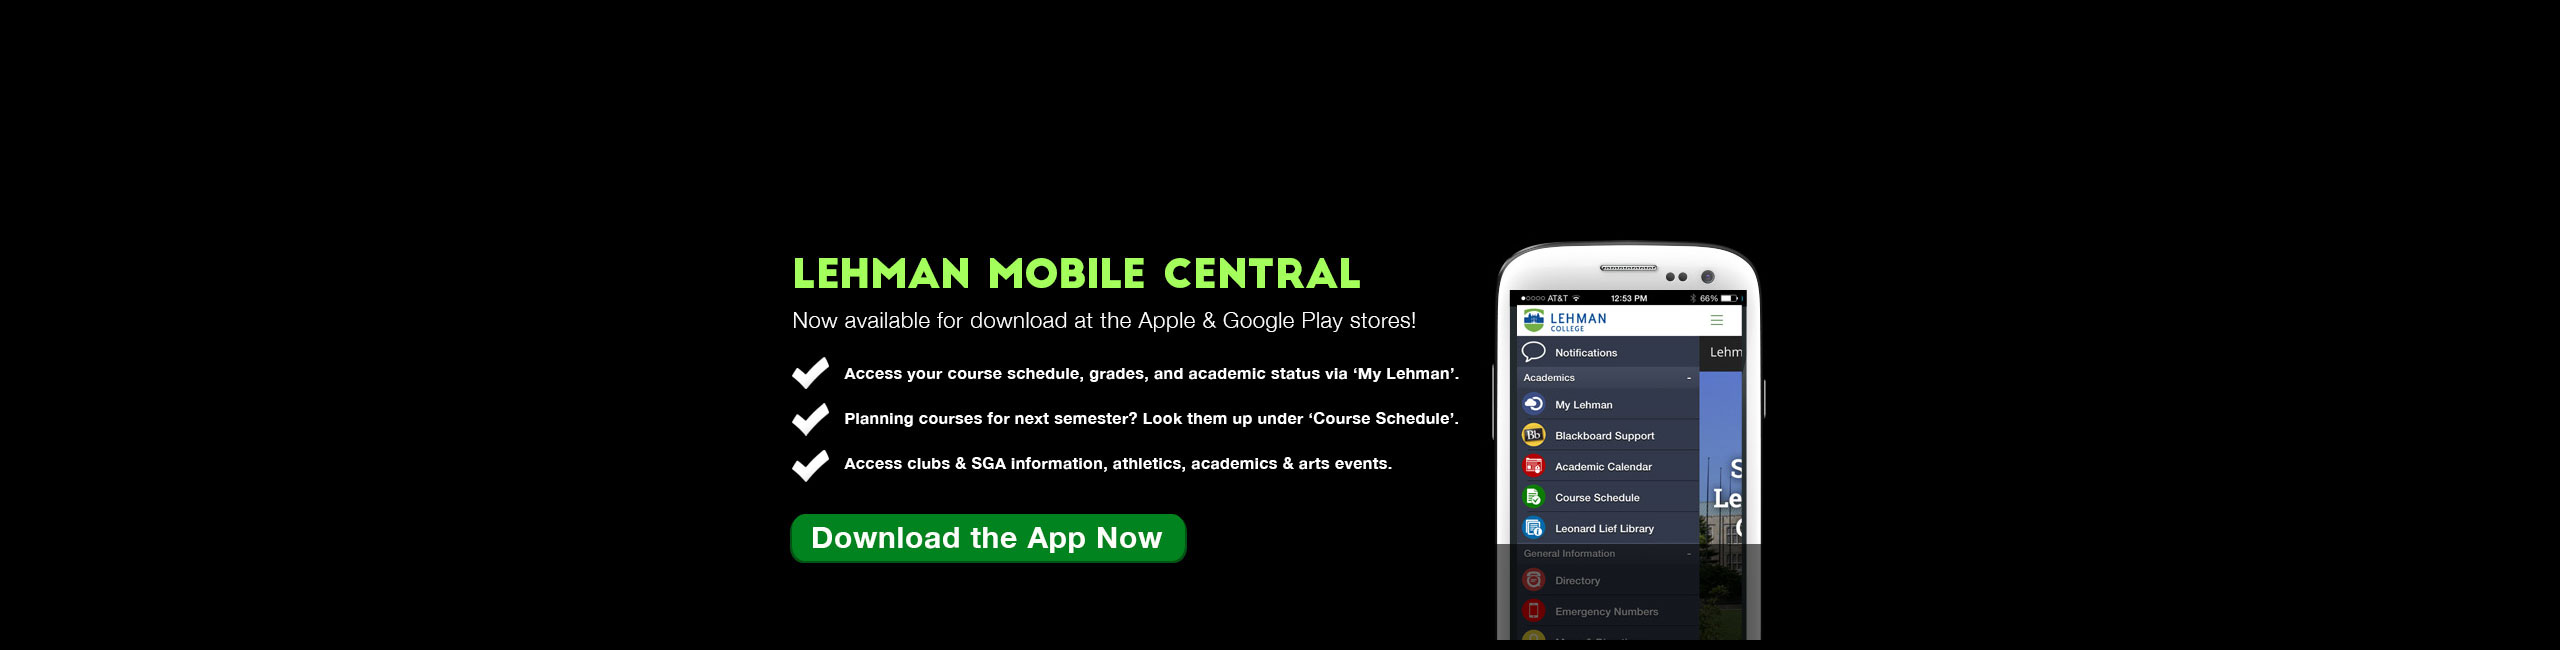 Lehman Mobile Central App Now Available for Download